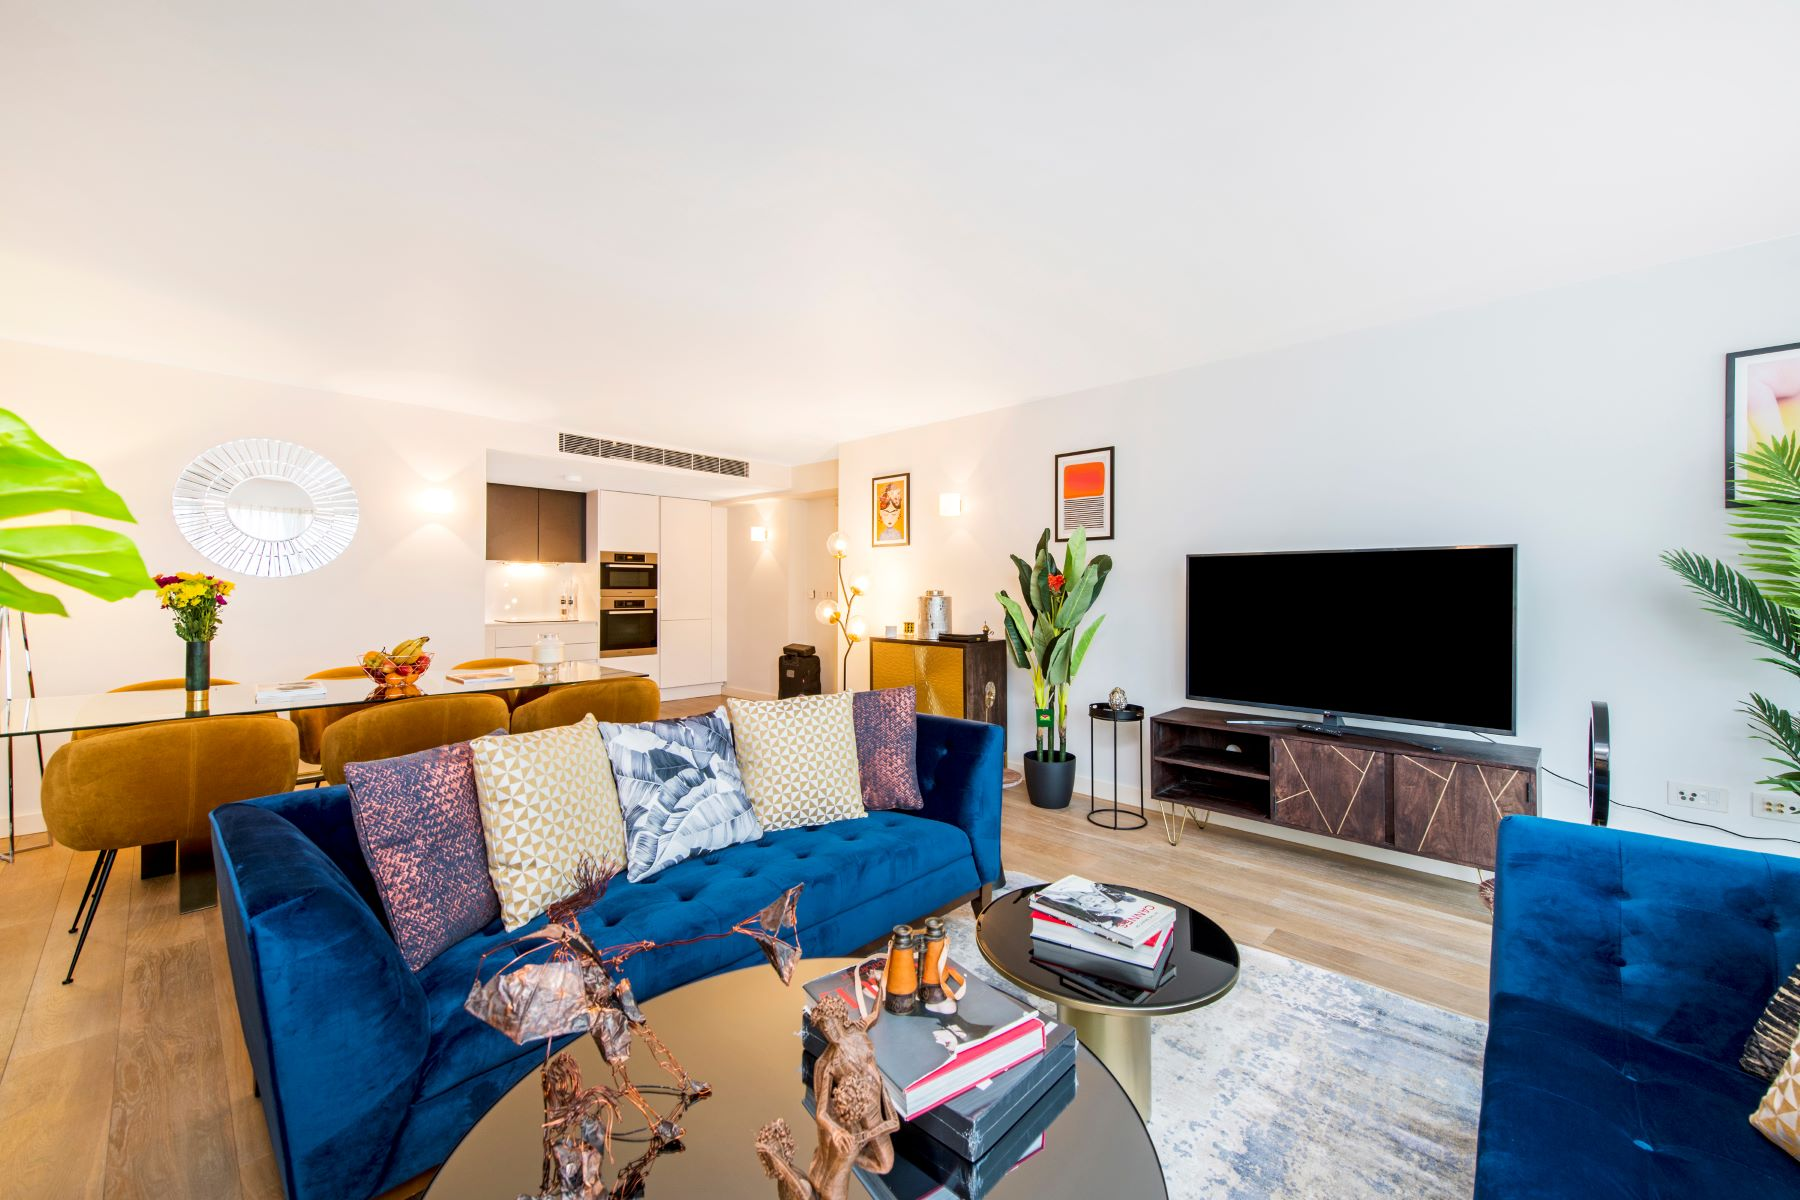 Apartments for Sale at Milliner House, Fulham, SW10 20 Miliner House, Hortensia Road London, England SW10 0QB United Kingdom